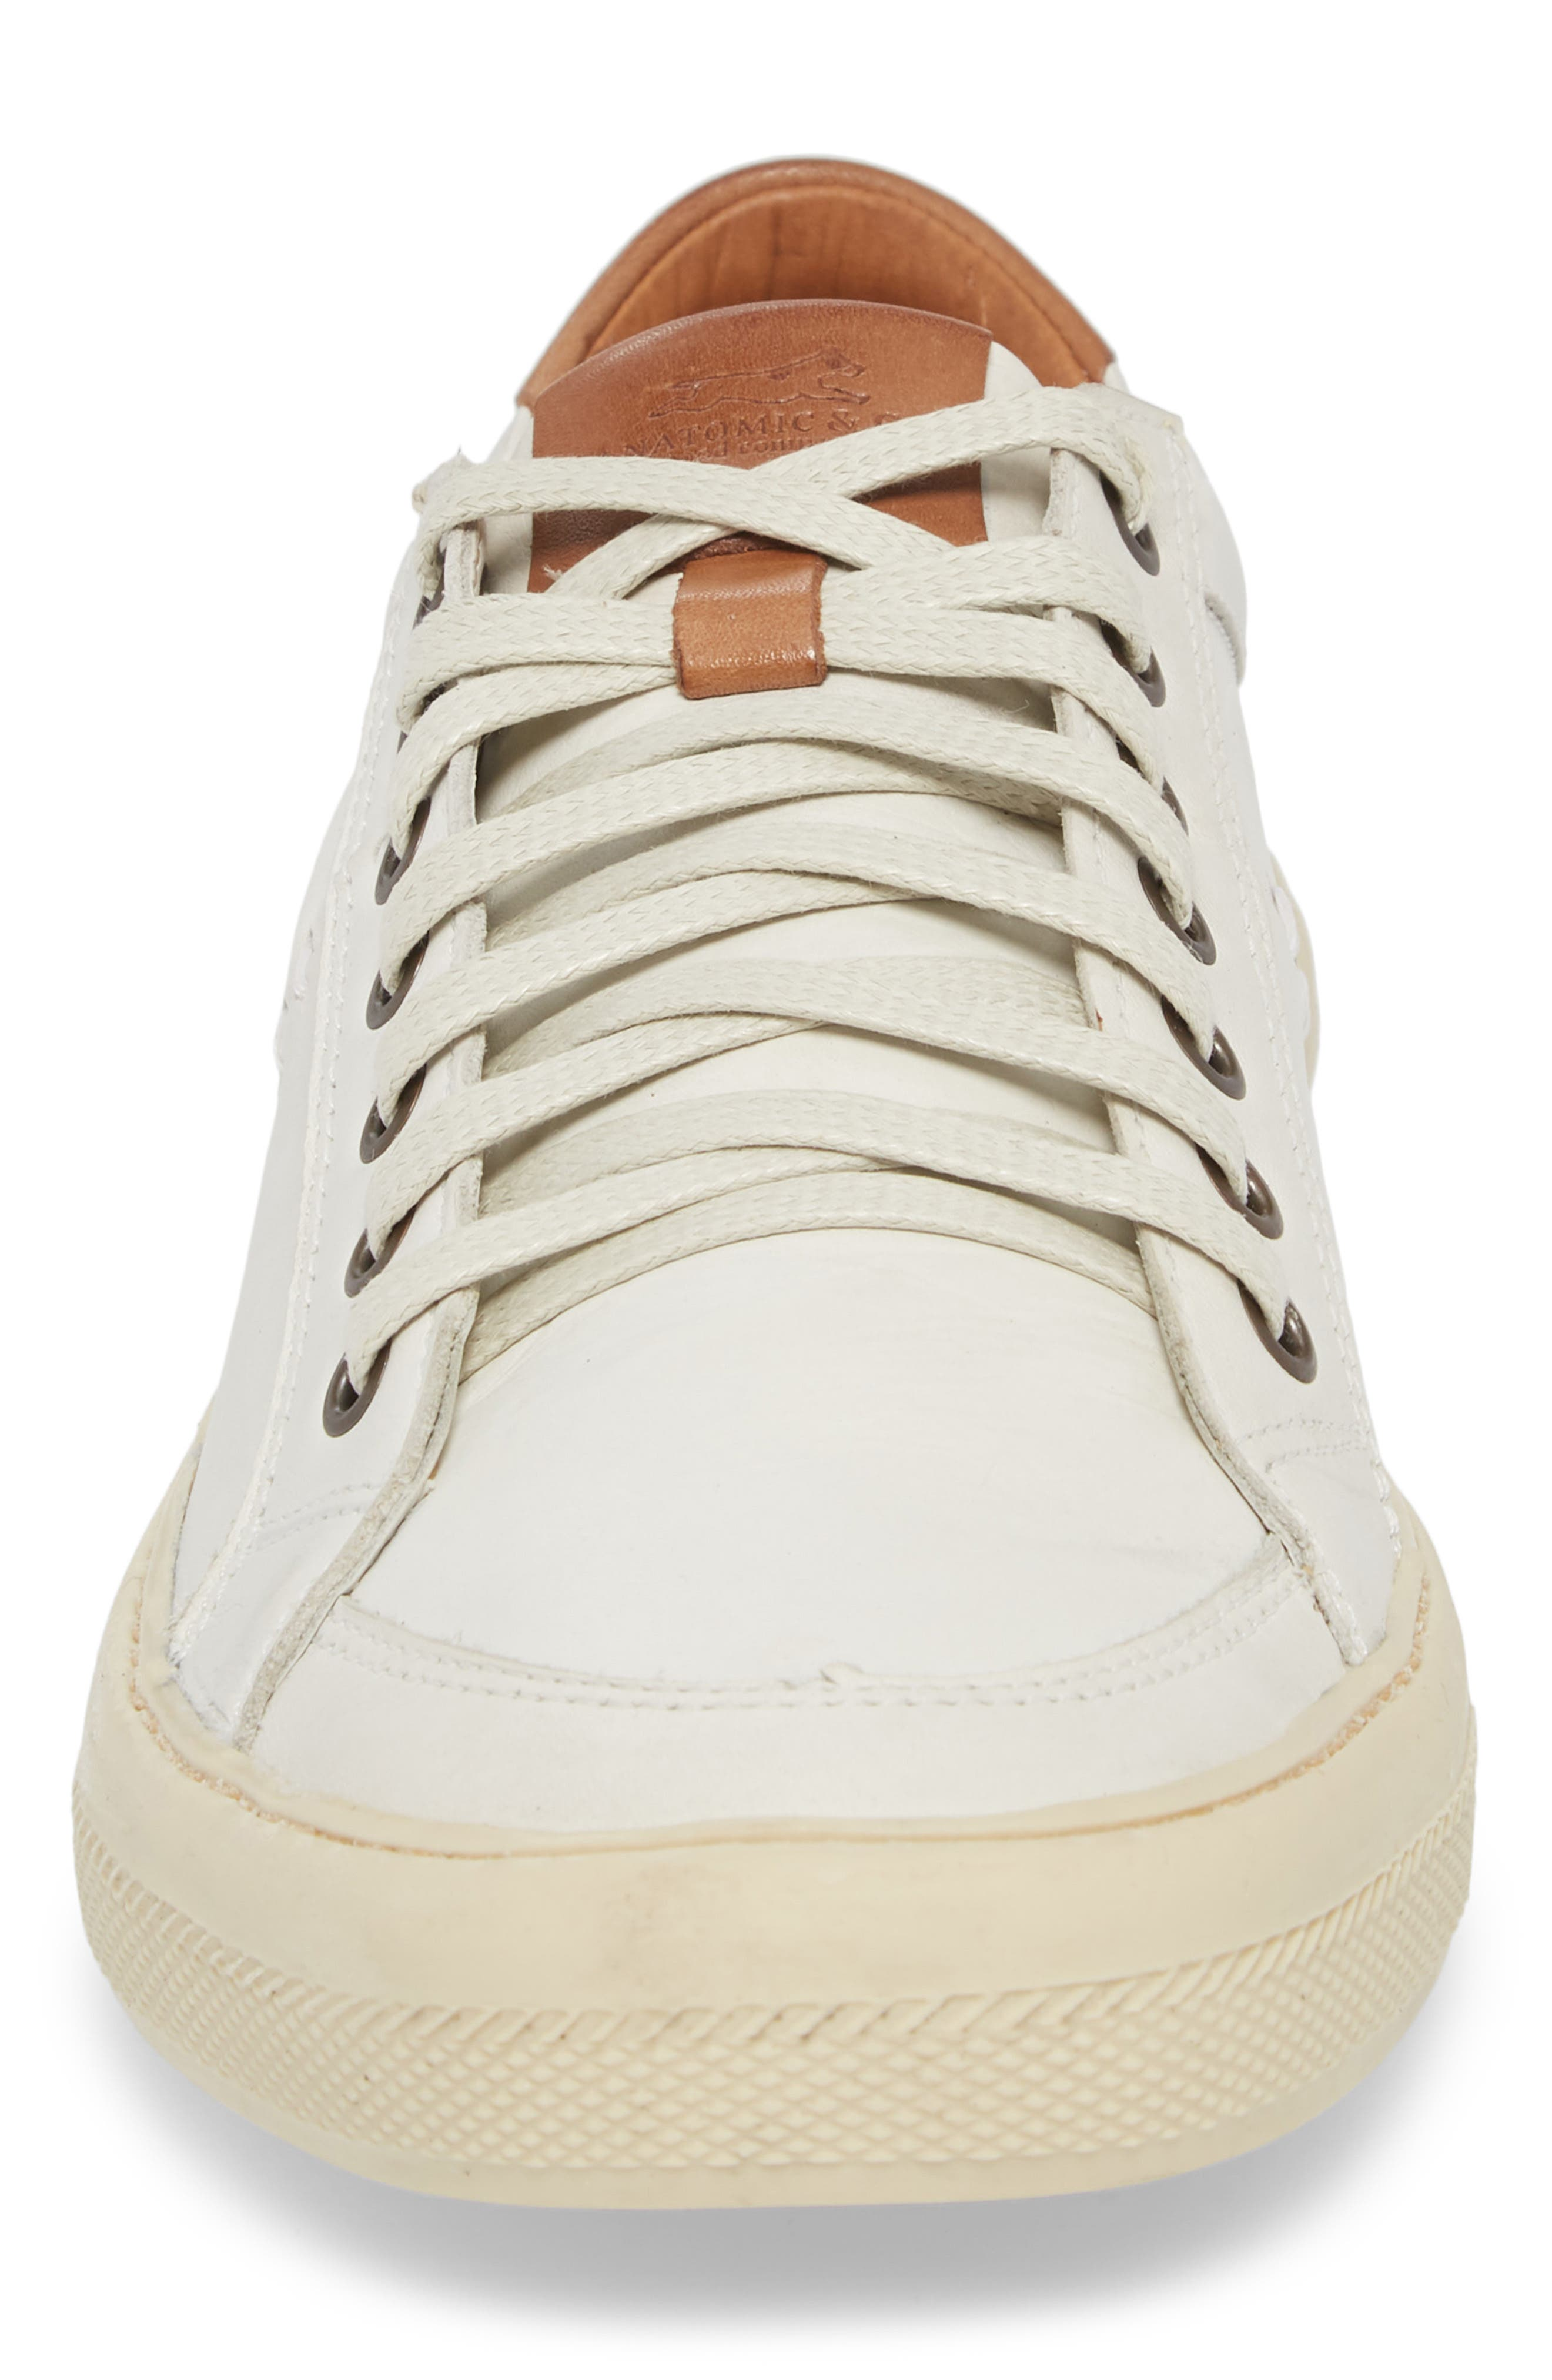 Bilac Low Top Sneaker,                             Alternate thumbnail 4, color,                             100